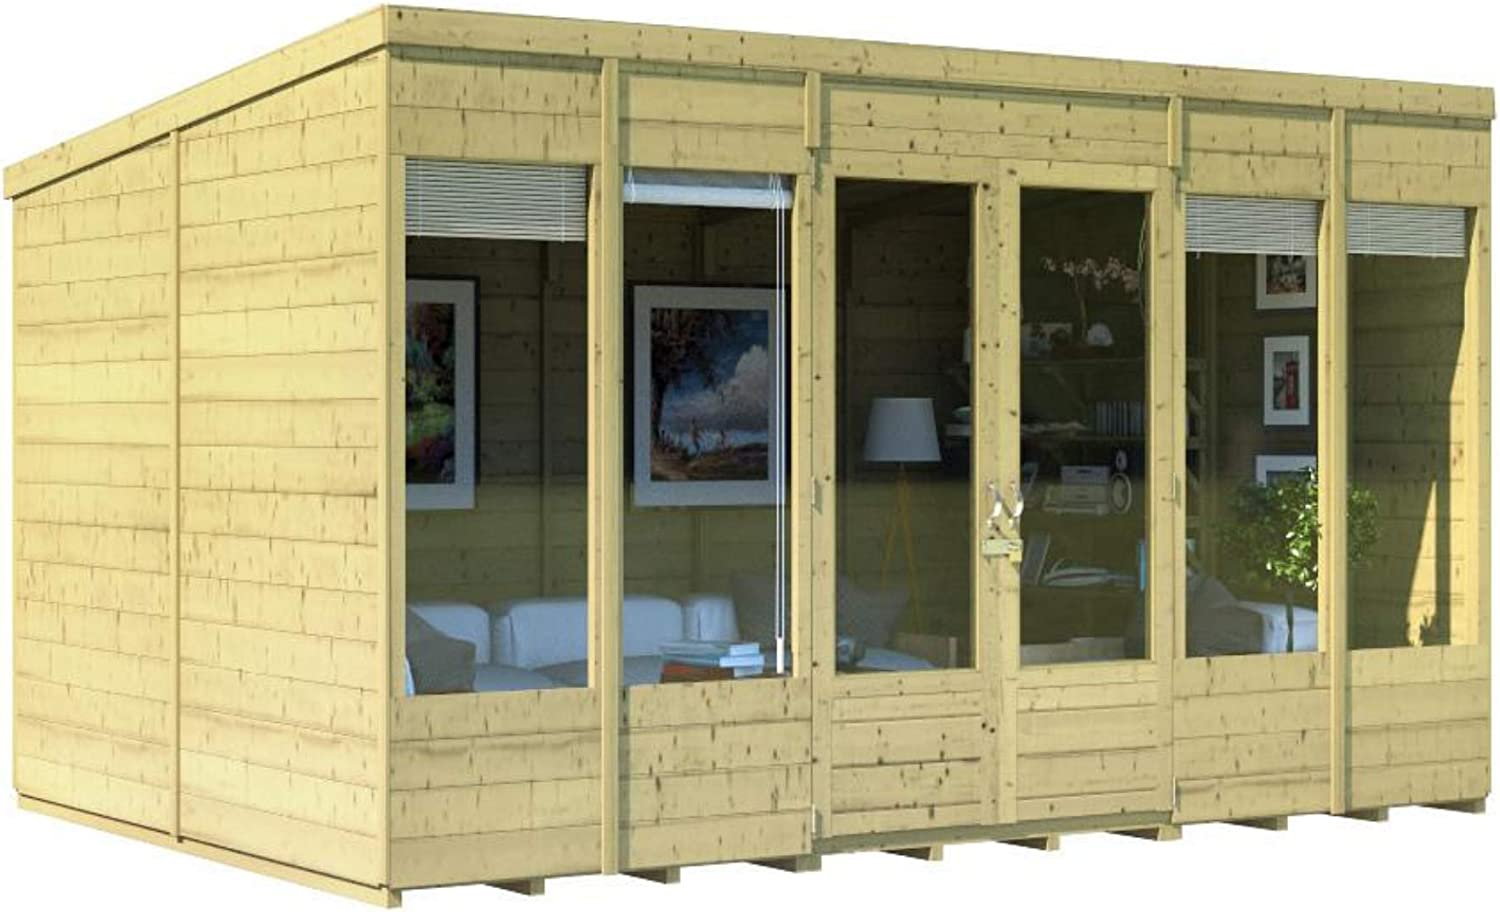 Pressure Treated Option Pressure Treated, 10x8 Range of Sizes BillyOh Bella Tongue and Groove Pent Summerhouse